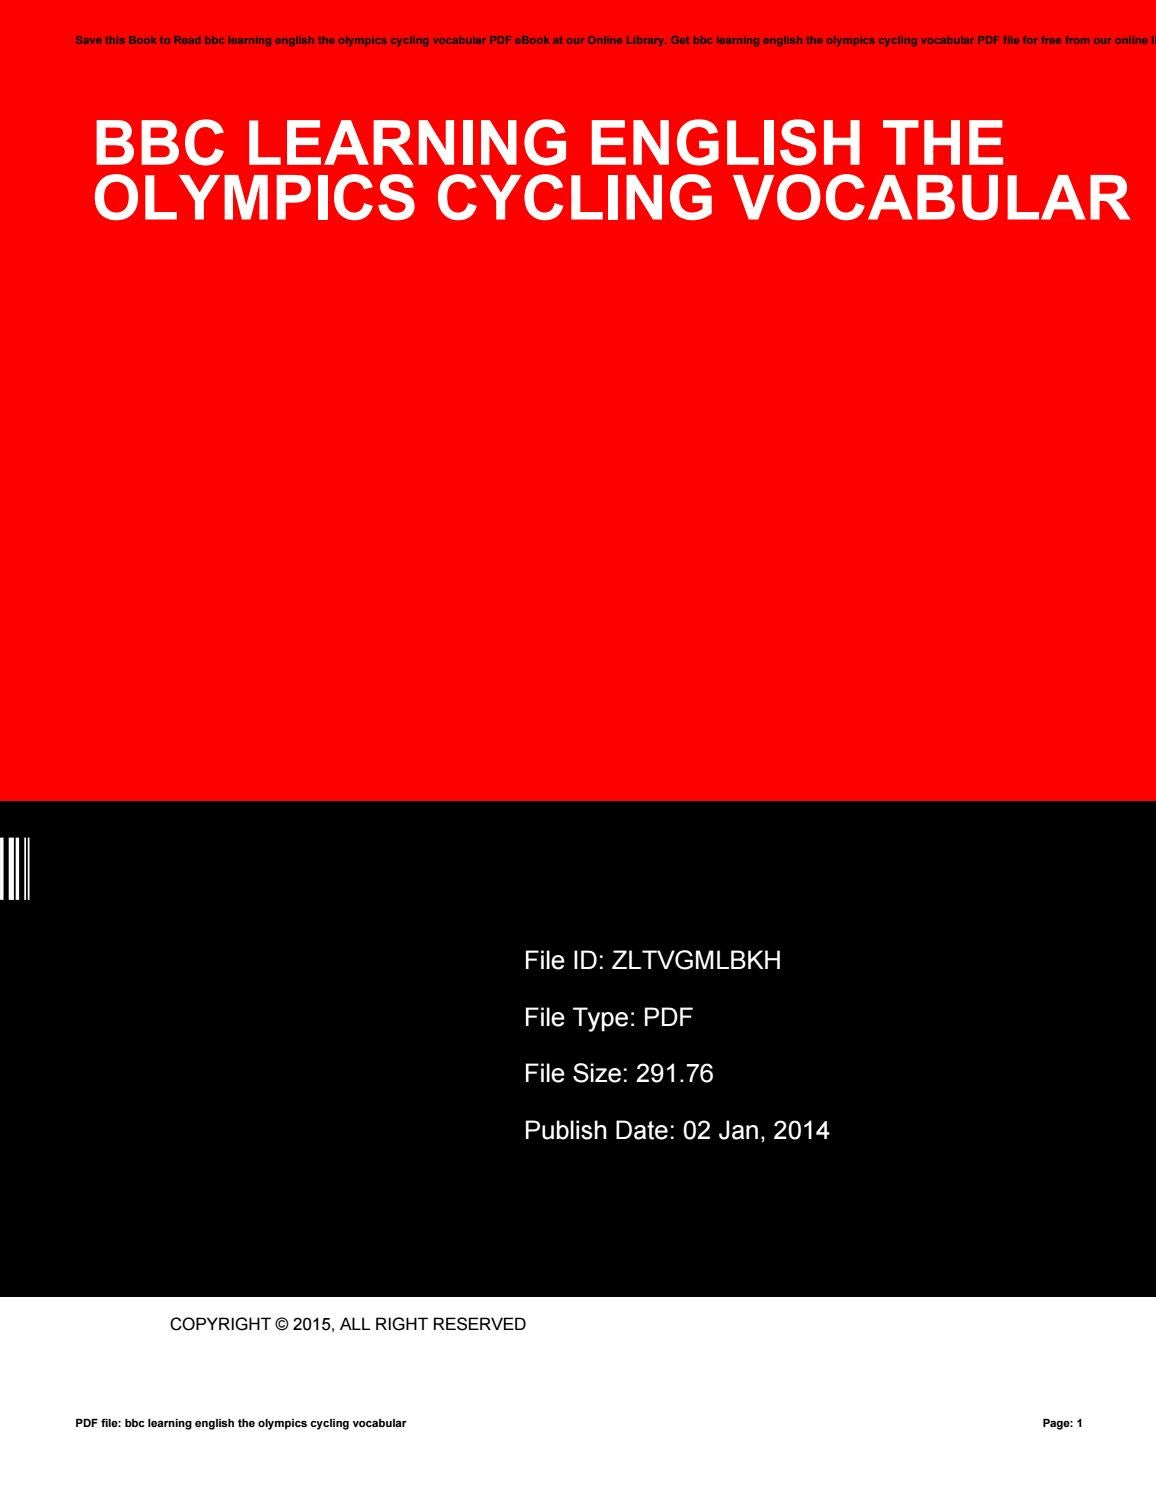 Bbc learning english the olympics cycling vocabular by